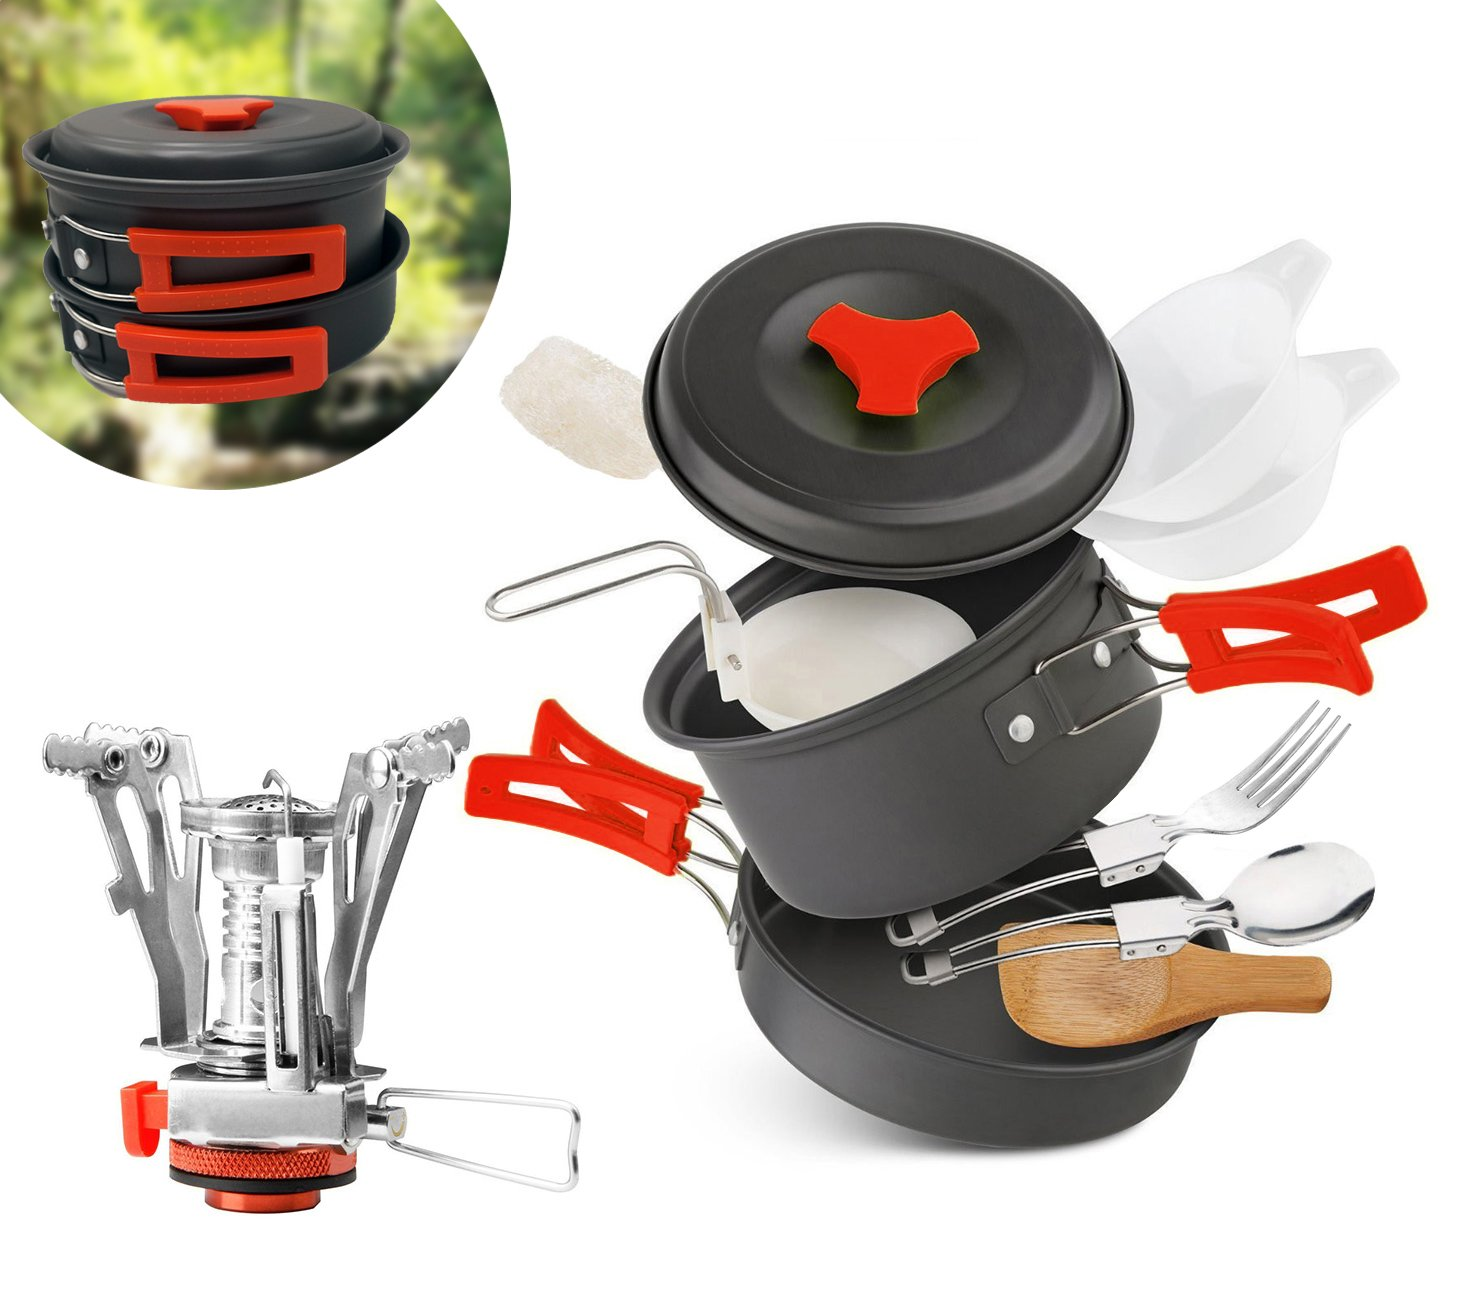 AnimaMiracle Camping Cookware Mess Kit & Small Backpacking Stove Ultralight, Lightweight, Compact, Folding Pot and Pans | Hiking Outdoors Bug Out Bag Cooking Equipment Cookset